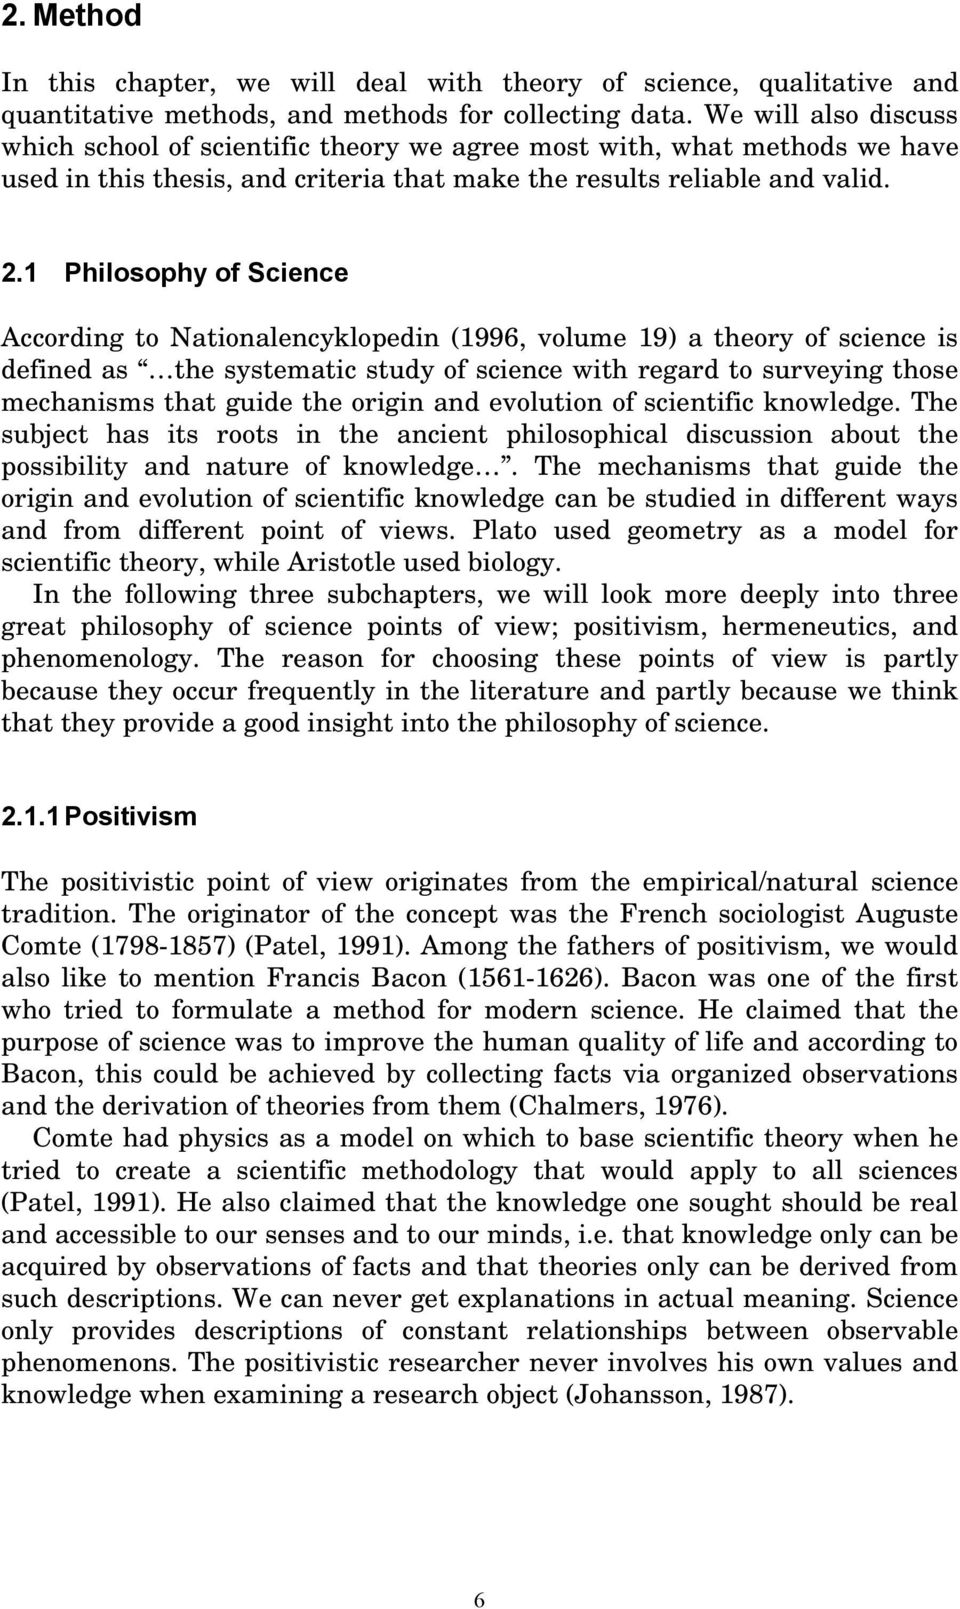 1 Philosophy of Science According to Nationalencyklopedin (1996, volume 19) a theory of science is defined as the systematic study of science with regard to surveying those mechanisms that guide the